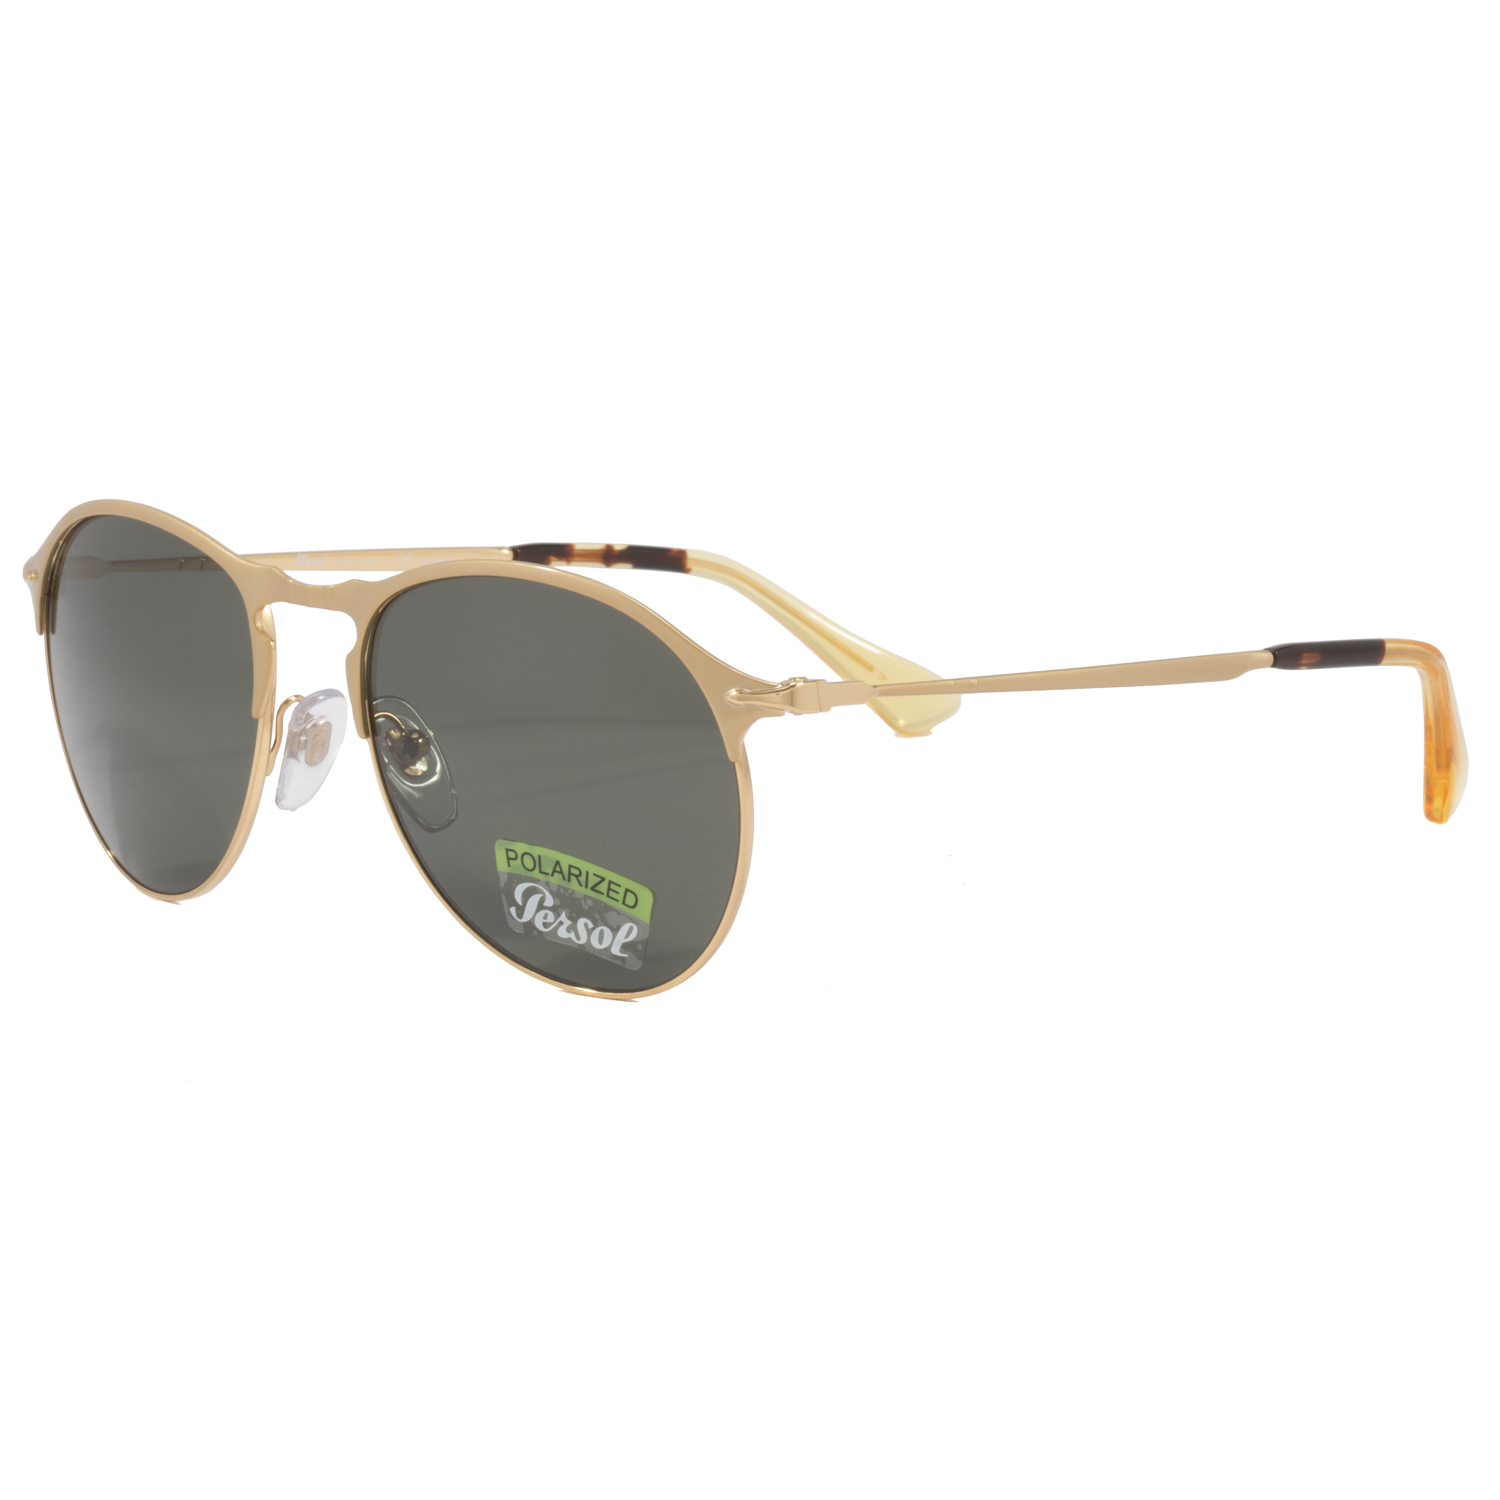 Wear you Trendswould round sunglasses images